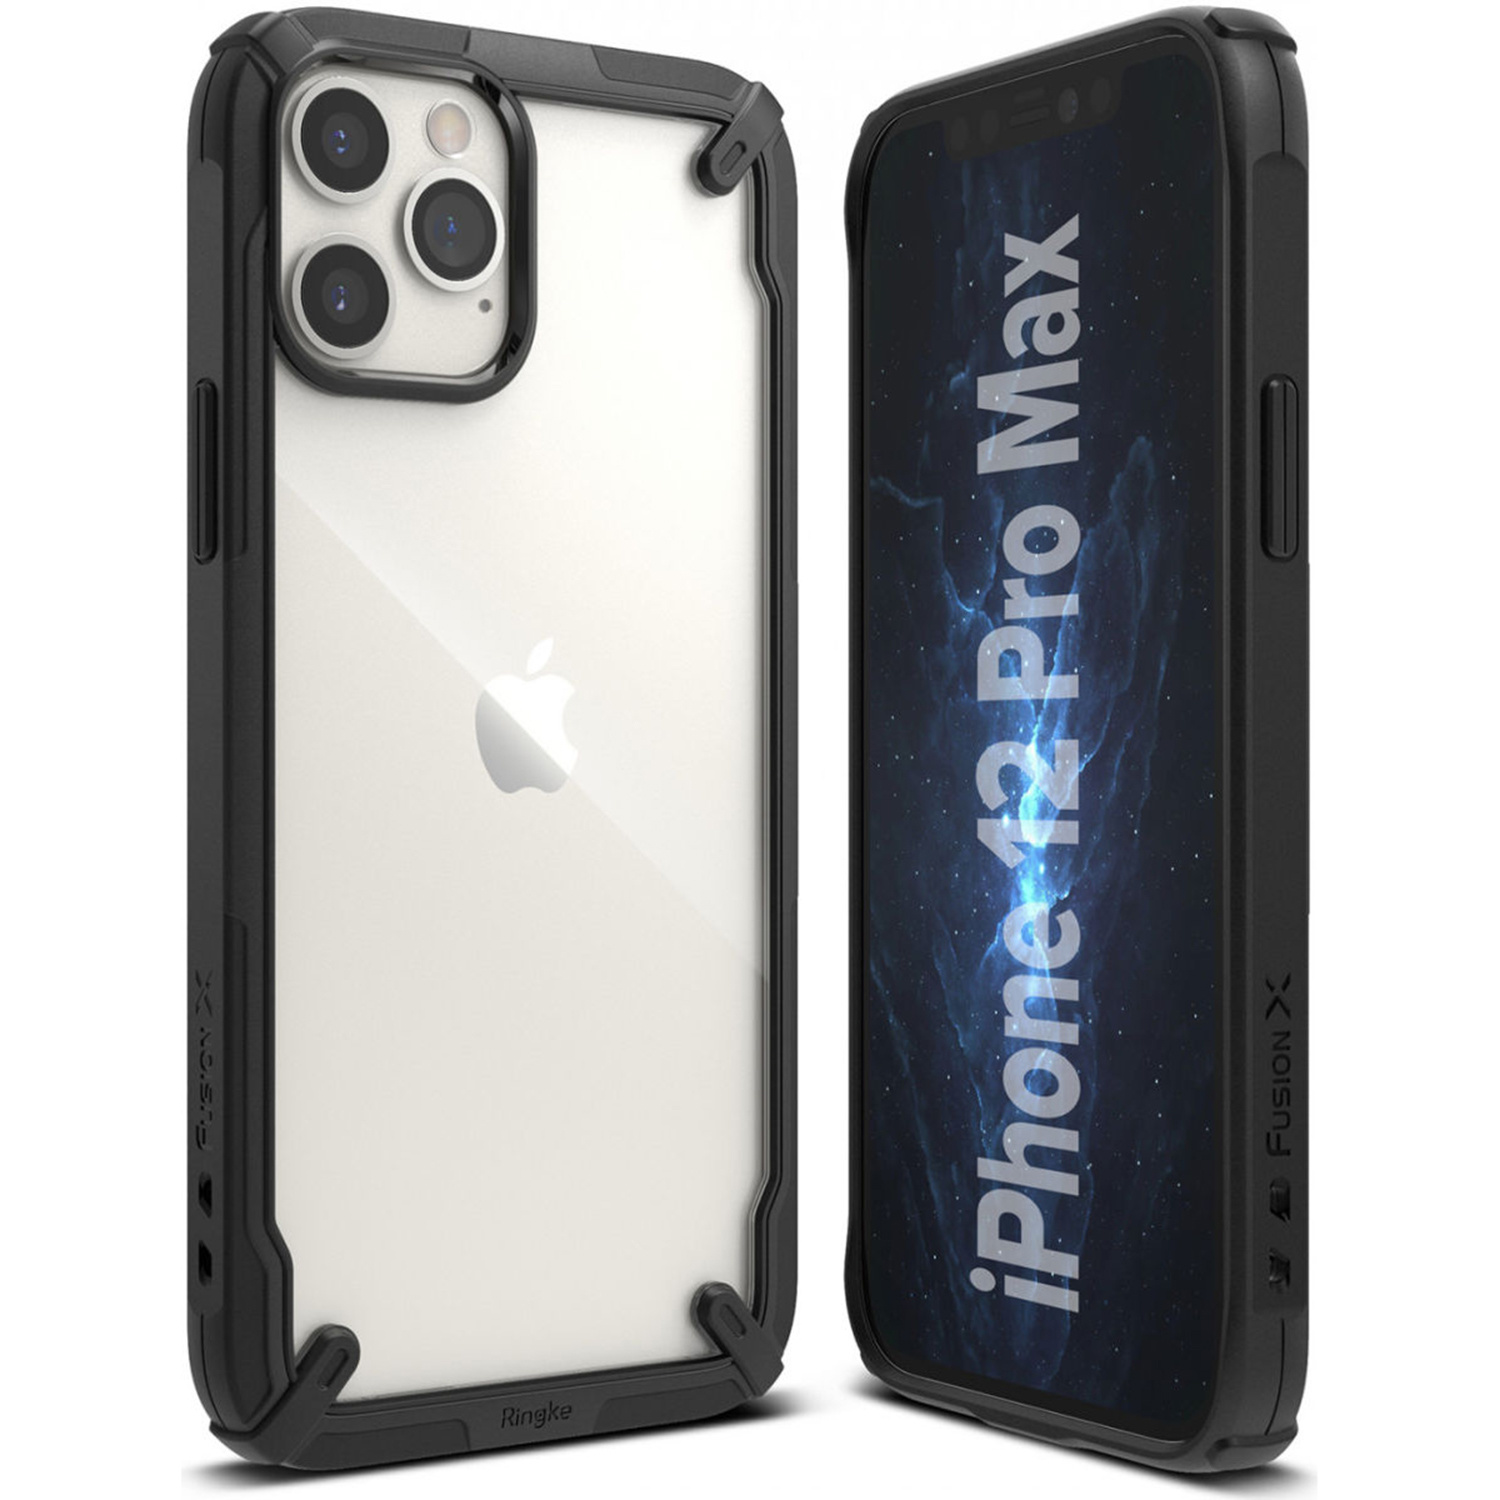 Ringke Fusion X Backcover iPhone 12 Pro Max - Zwart